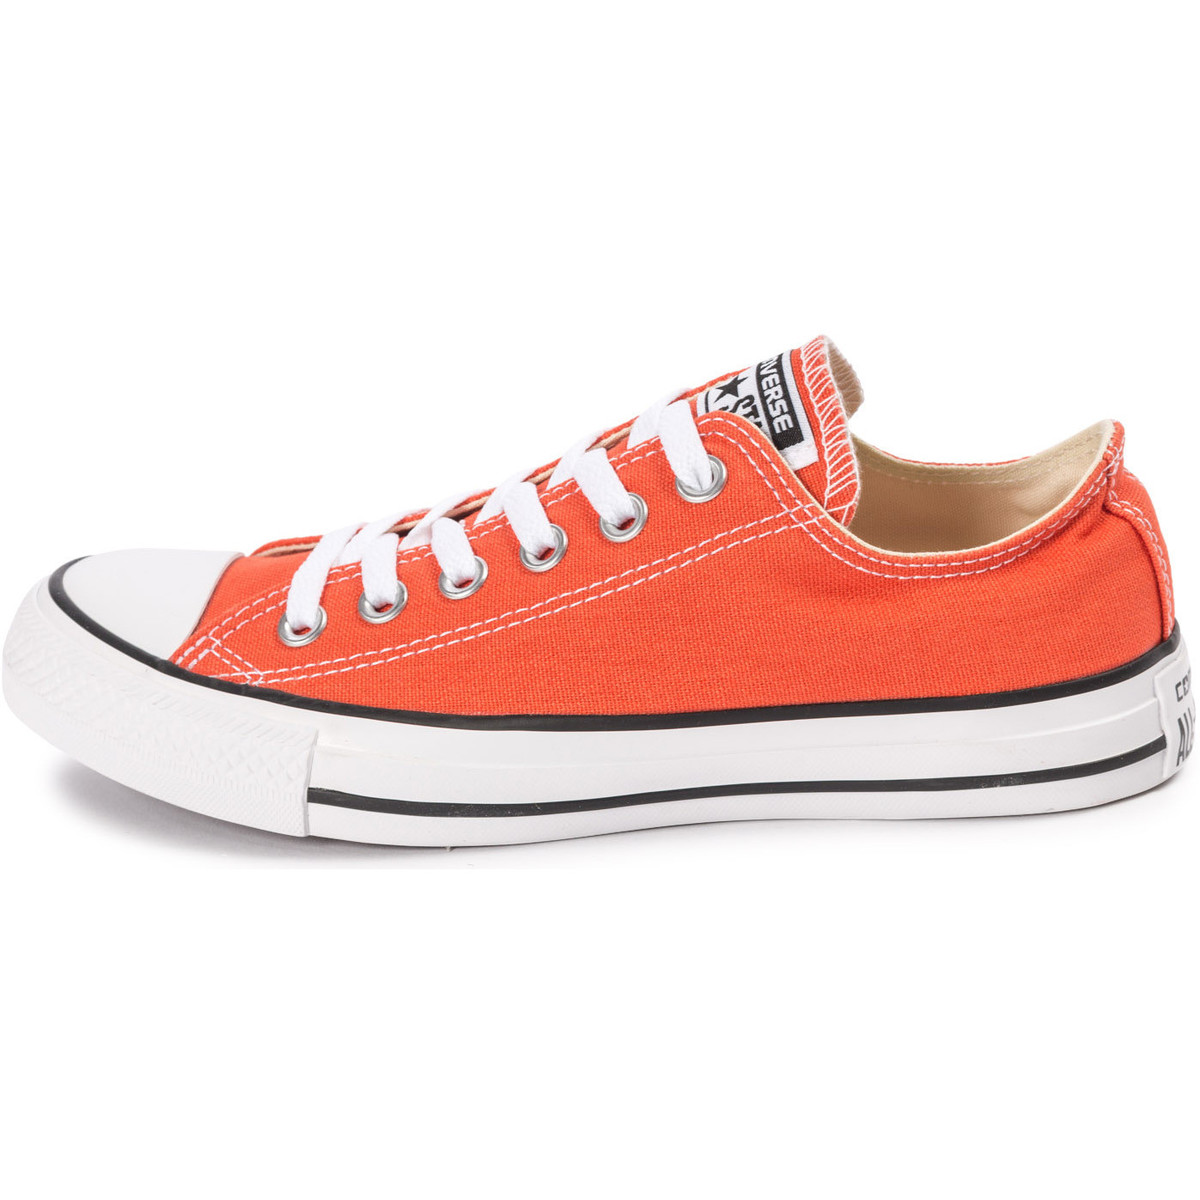 Converse Chuck Taylor All-star Canvas Ox Orange